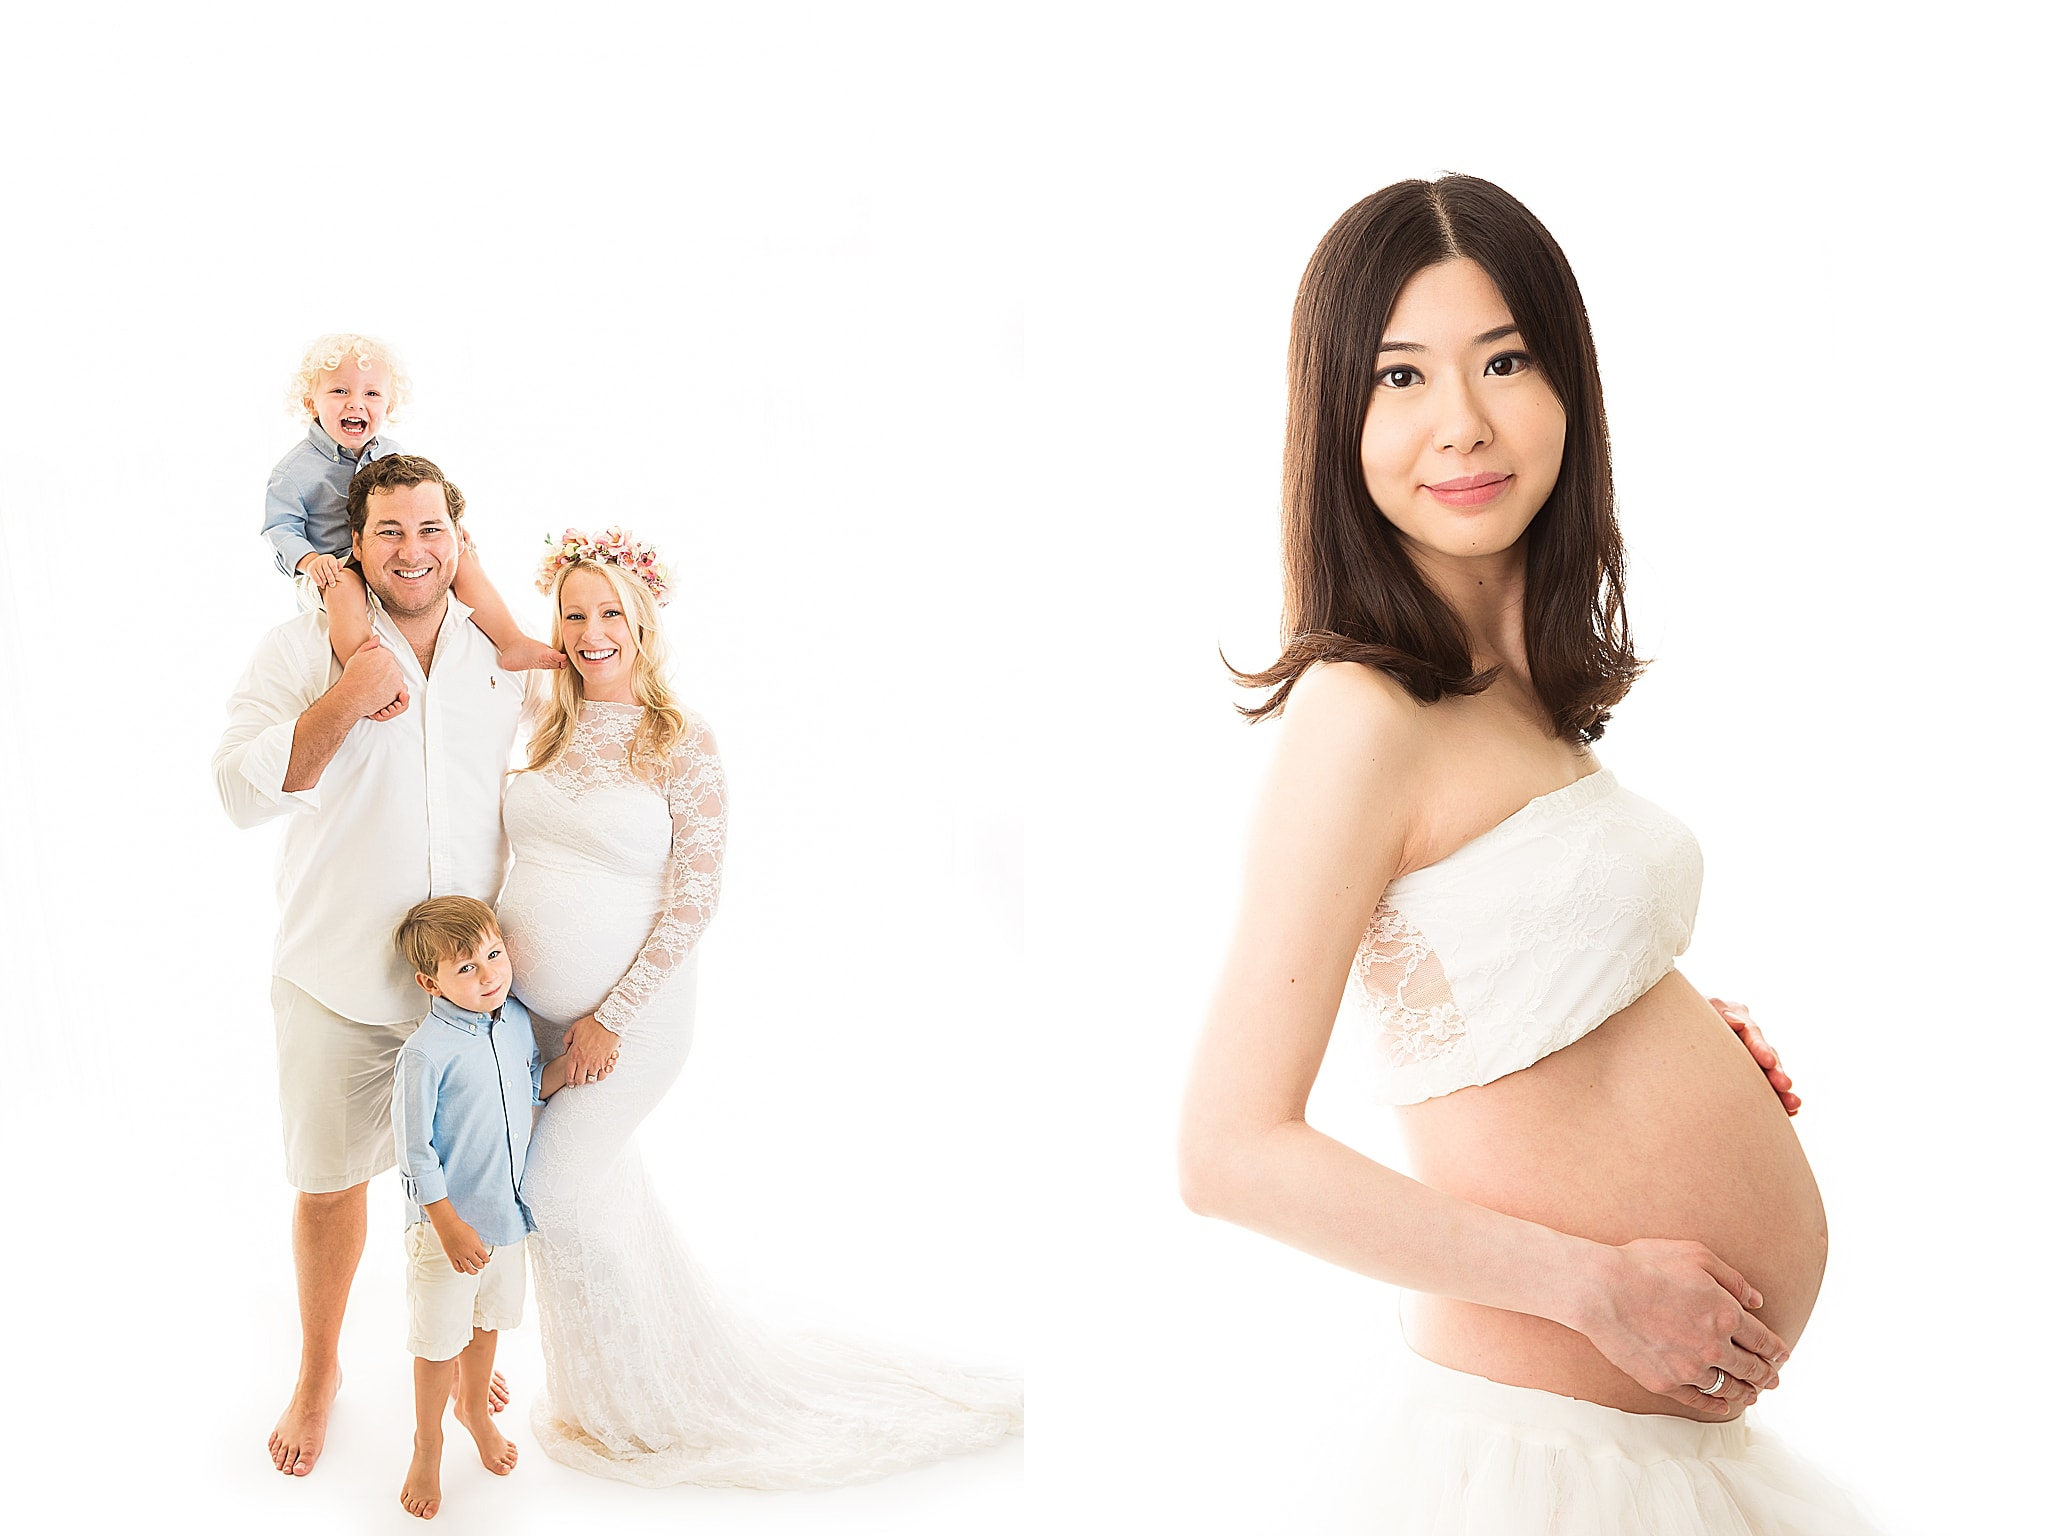 pregnant women with family in white dress and tutu